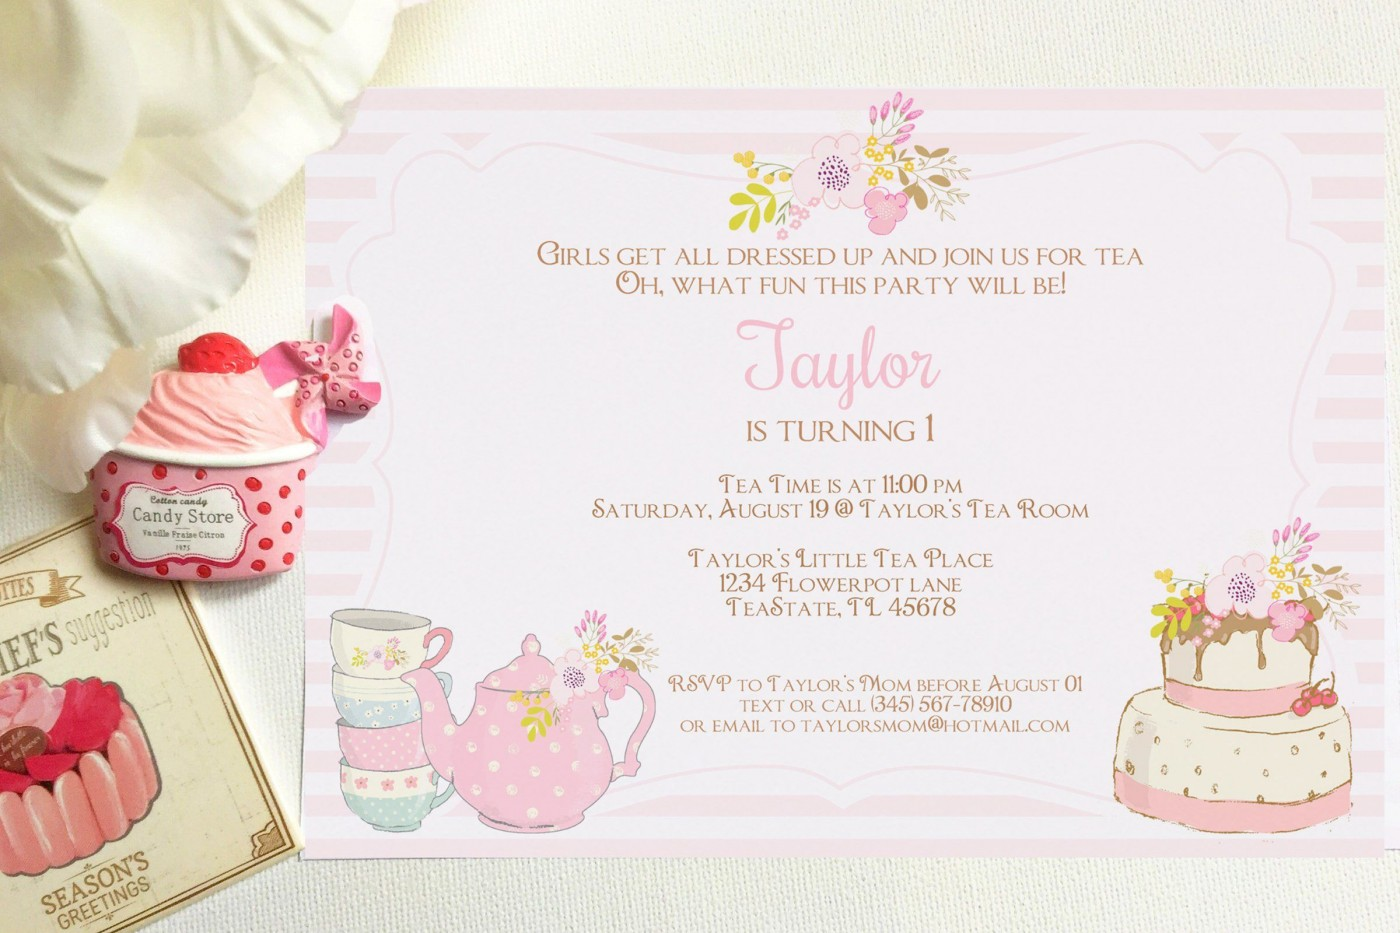 008 Outstanding Tea Party Invitation Template High Definition  Vintage Free Editable Card Pdf1400